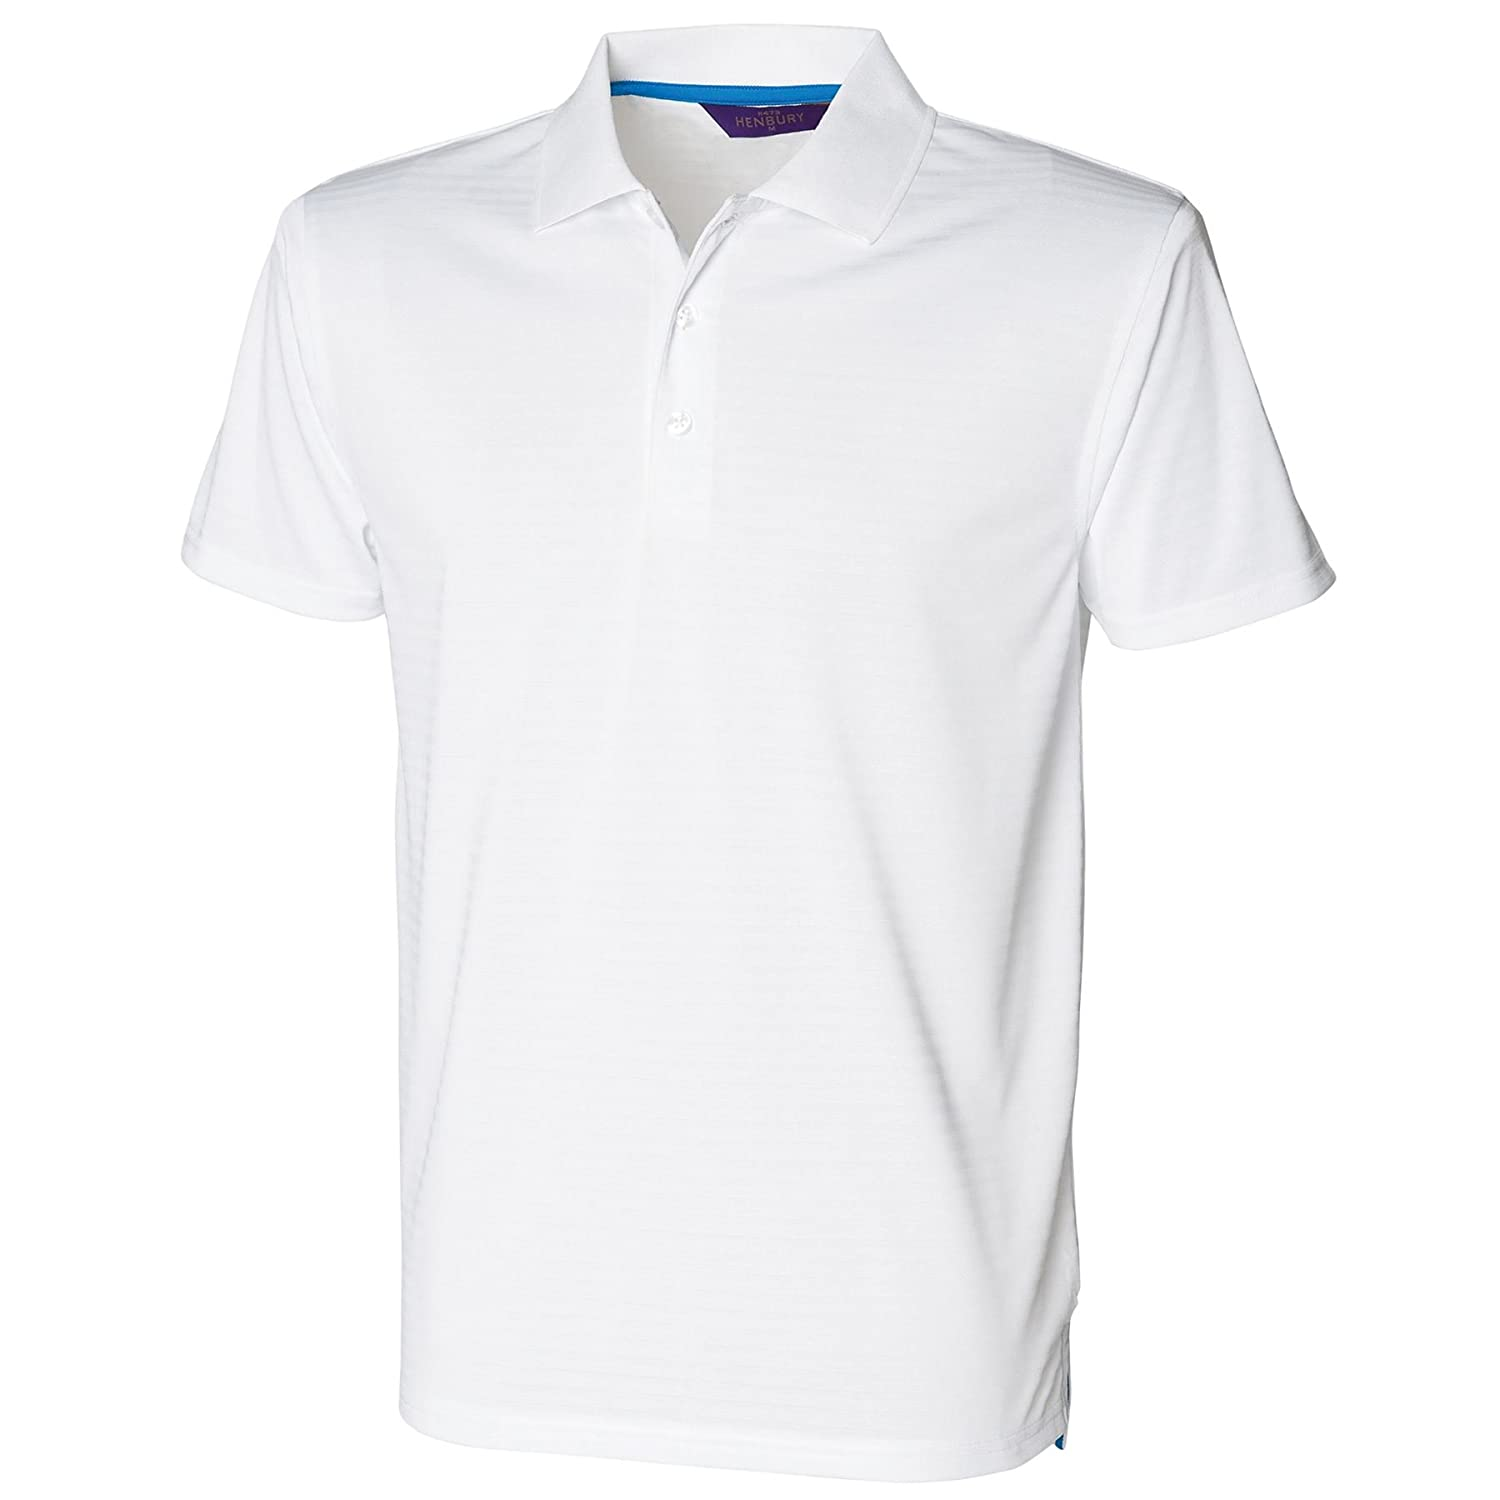 Henbury-Mens Poloshirts-Tops-Cooltouch textured stripe polo shirt